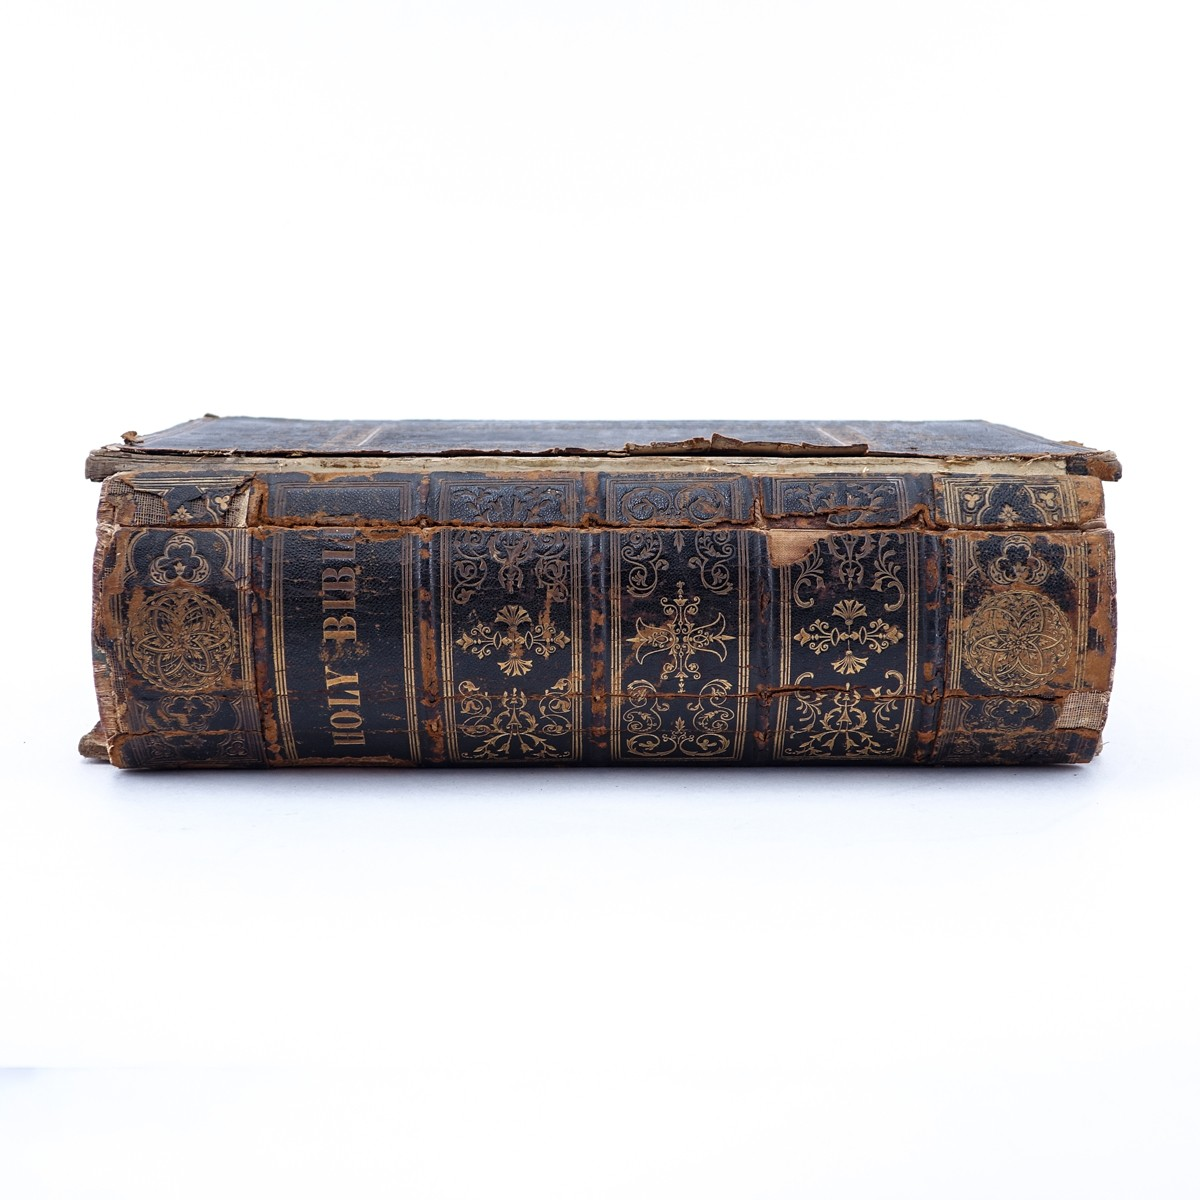 Harper and Brothers, Publishers, New York, 1846, Large Leather Bound Illuminated Bible. Includes th